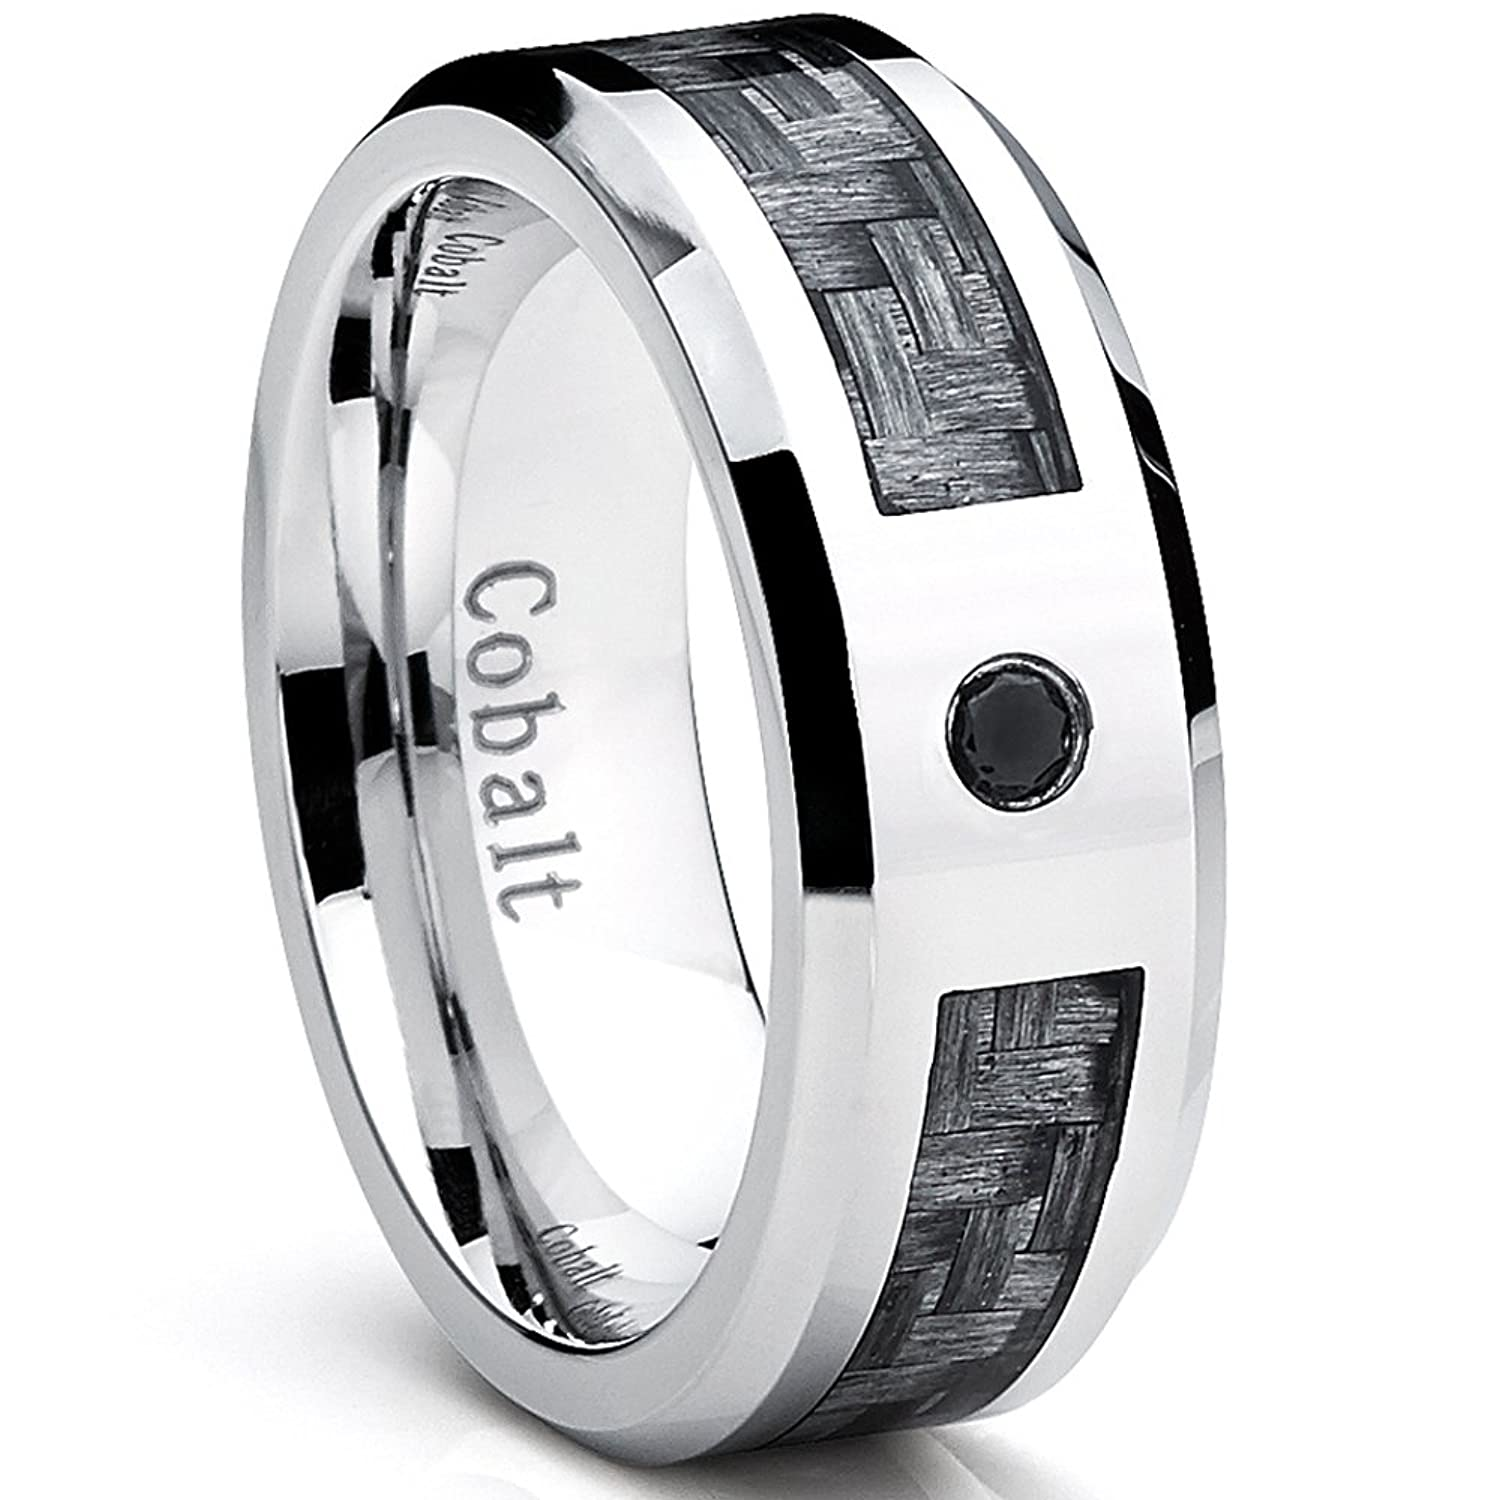 steel lyst men product fiber wedding mens iconic jewelry ring s emporio normal gallery stainless rings and carbon armani black